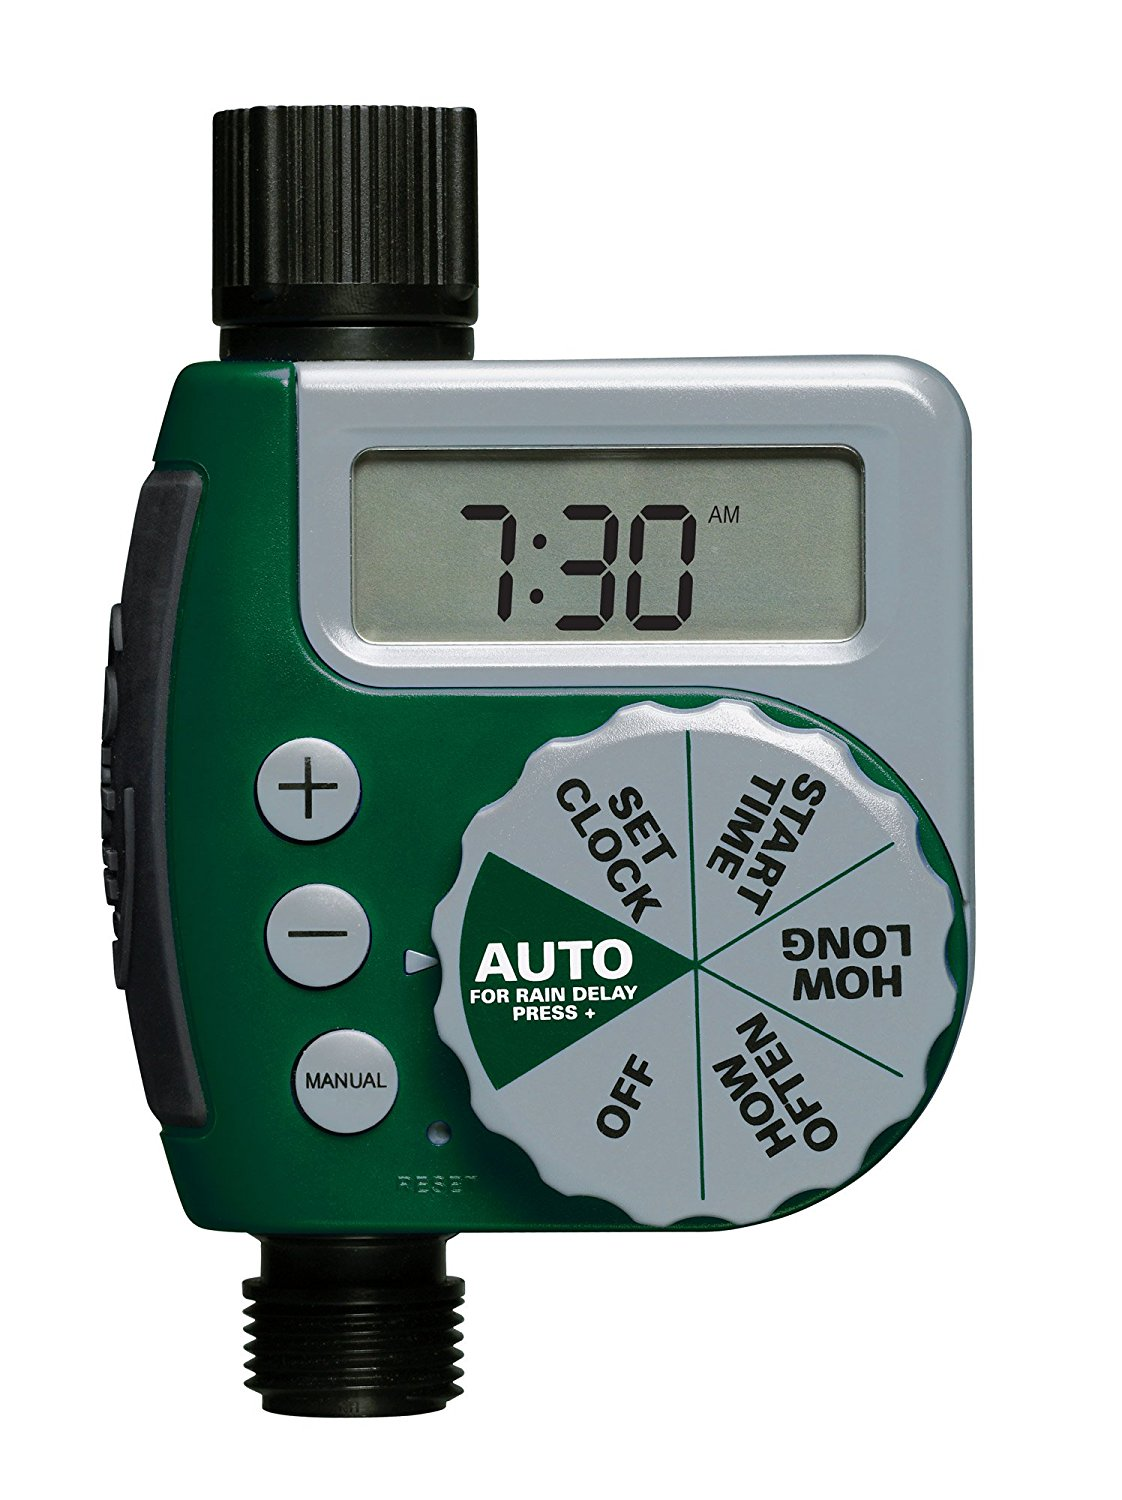 Orbit Programmable Dial Hose Faucet Timer – Digital Readout, Available in 3 Port Options